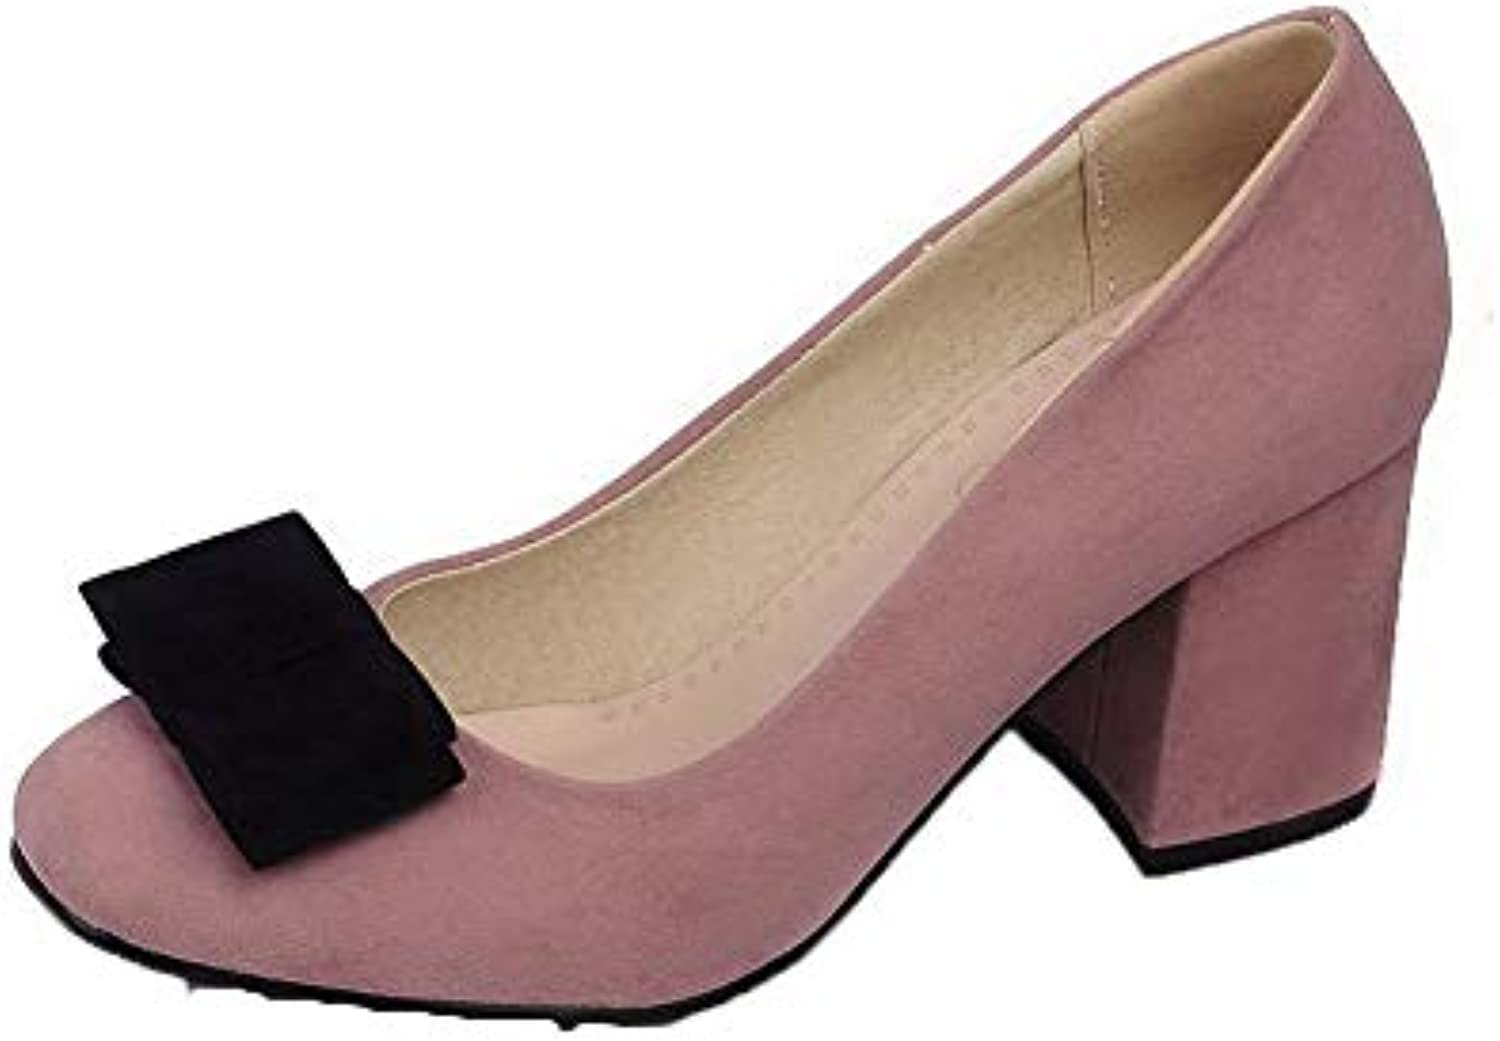 46b816b2877 AgooLar Women s Solid Frosted Kitten-Heels Square Closed Toe Pull-On  Pull-On Pull-On Pumps-Shoes